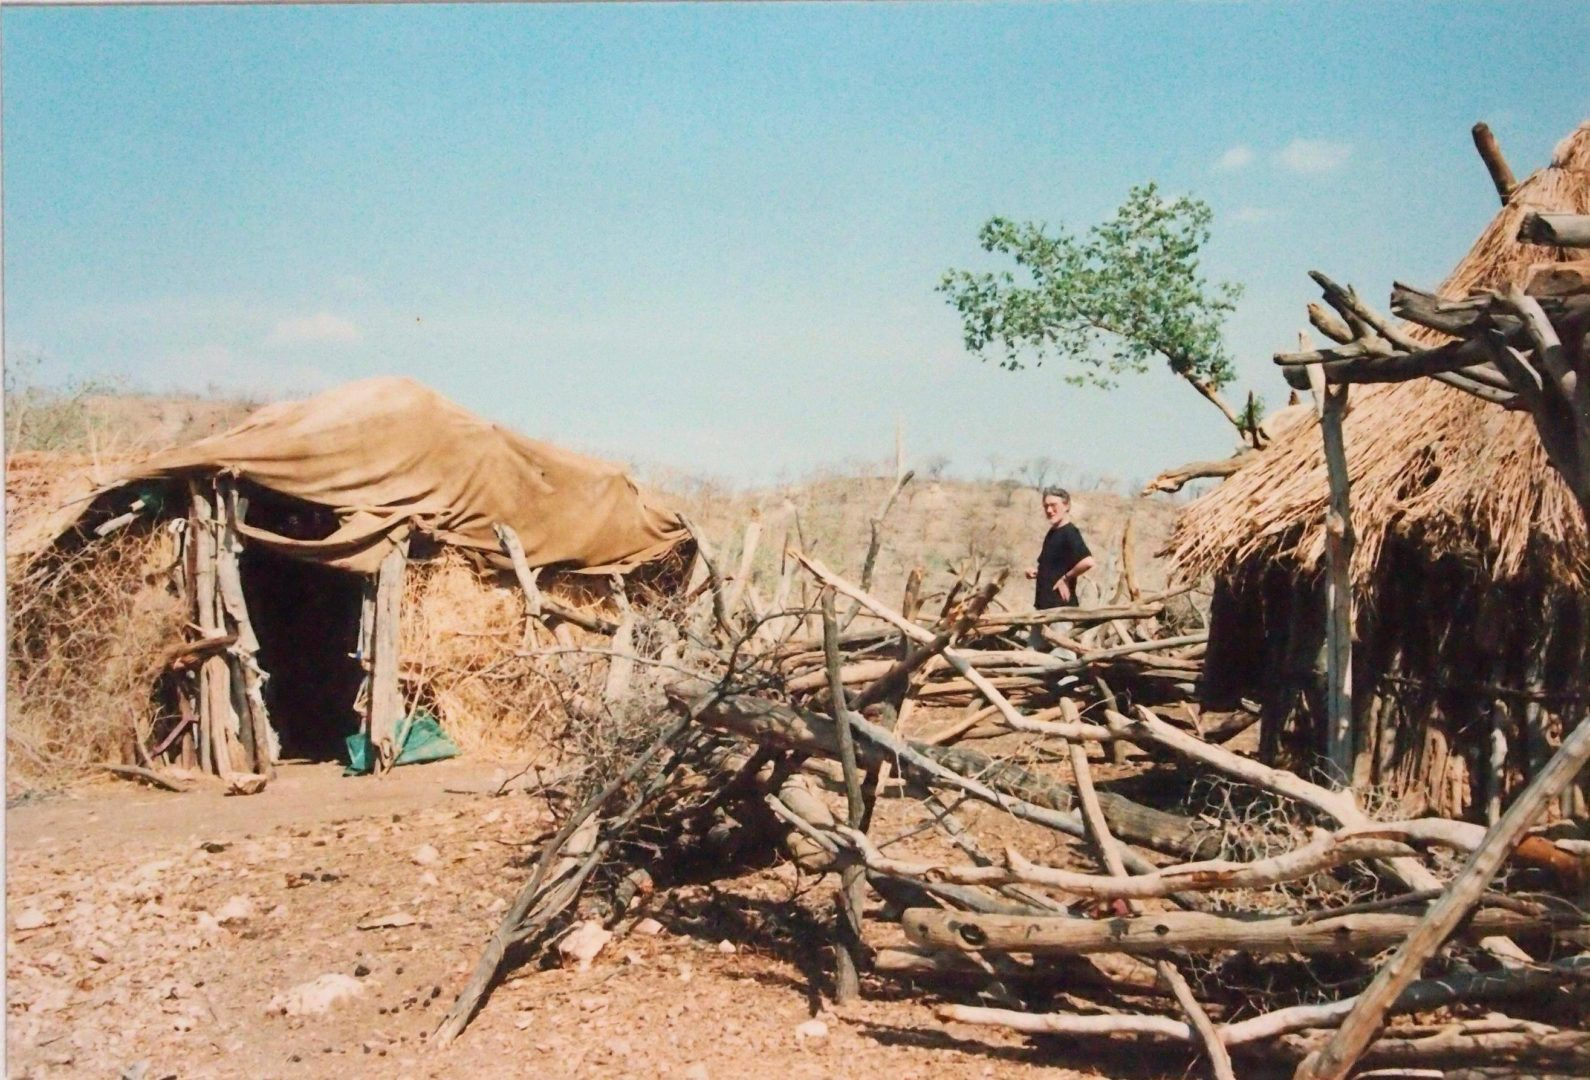 ETH-Tigray REST Food Convoy 19910413 Maiteno Hill REST Field Office Huts